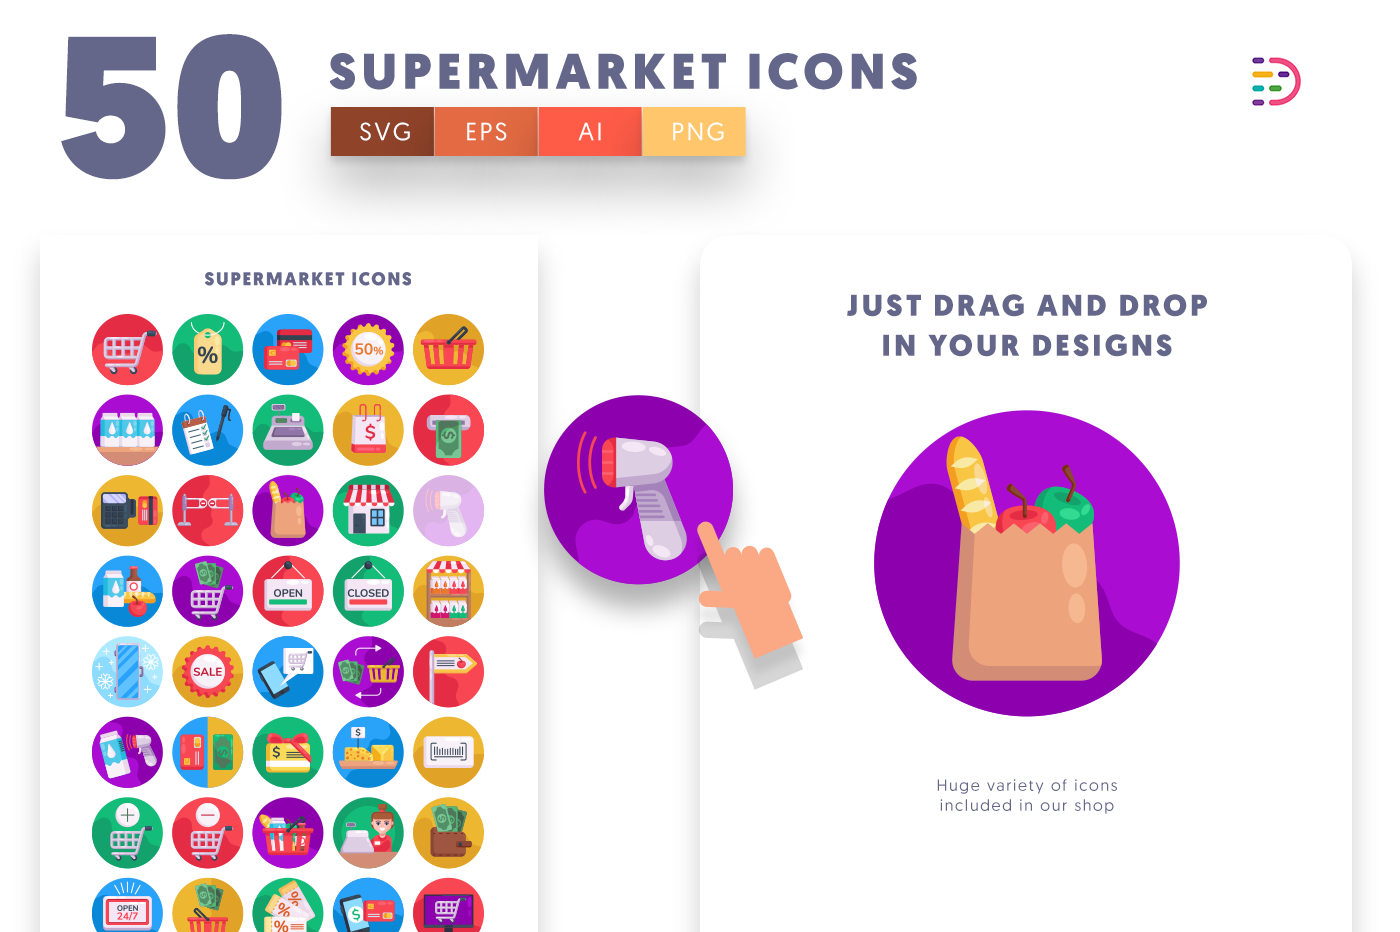 Drag and drop vector 50 Supermarket Icons